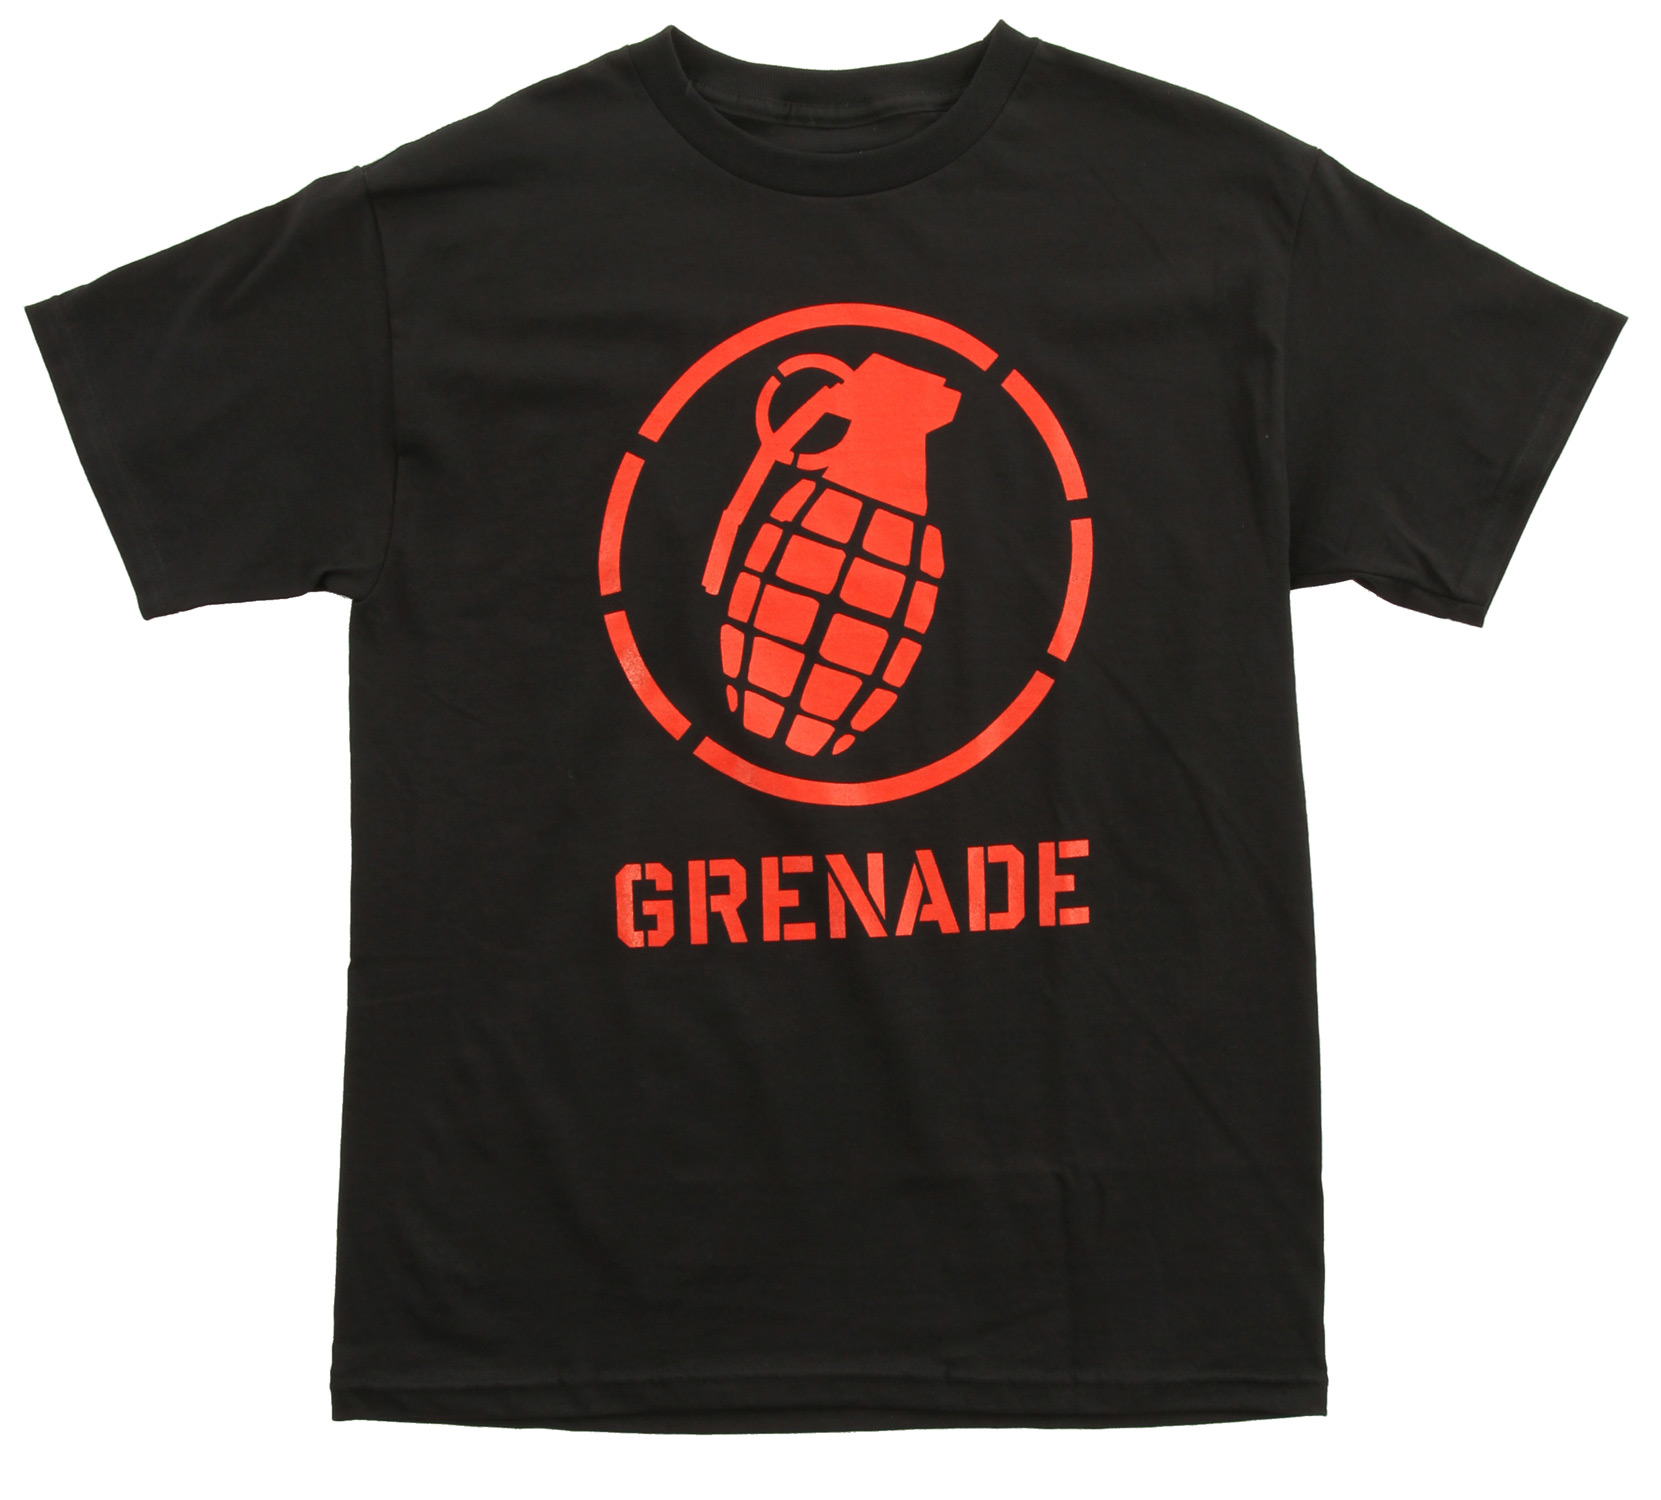 Grenade Wordmark Stenz T-Shirt - $11.95